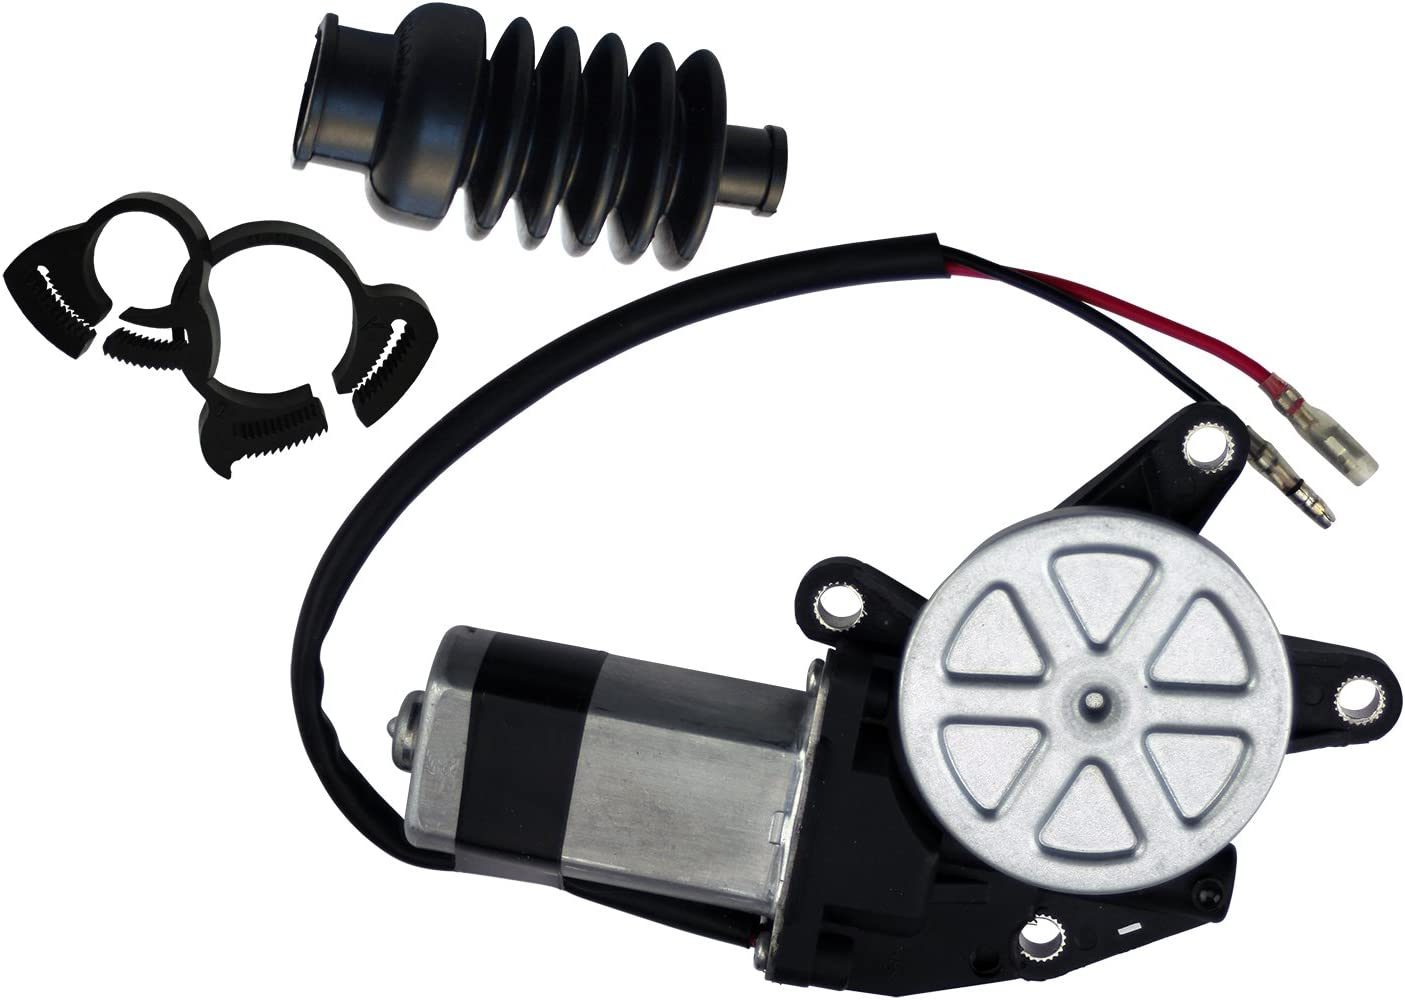 (Compatible With Sea-Doo) Premium Venom Brand Tilt Trim Motor Replacement KIT w Boot & Clamps Fits MANY 1996-2011 GSI SPX SP RX GSX XP RXP WAKE 278000616 278001292 (See Fit Chart In Description Below) 71B4vnG2NTLSL1500_